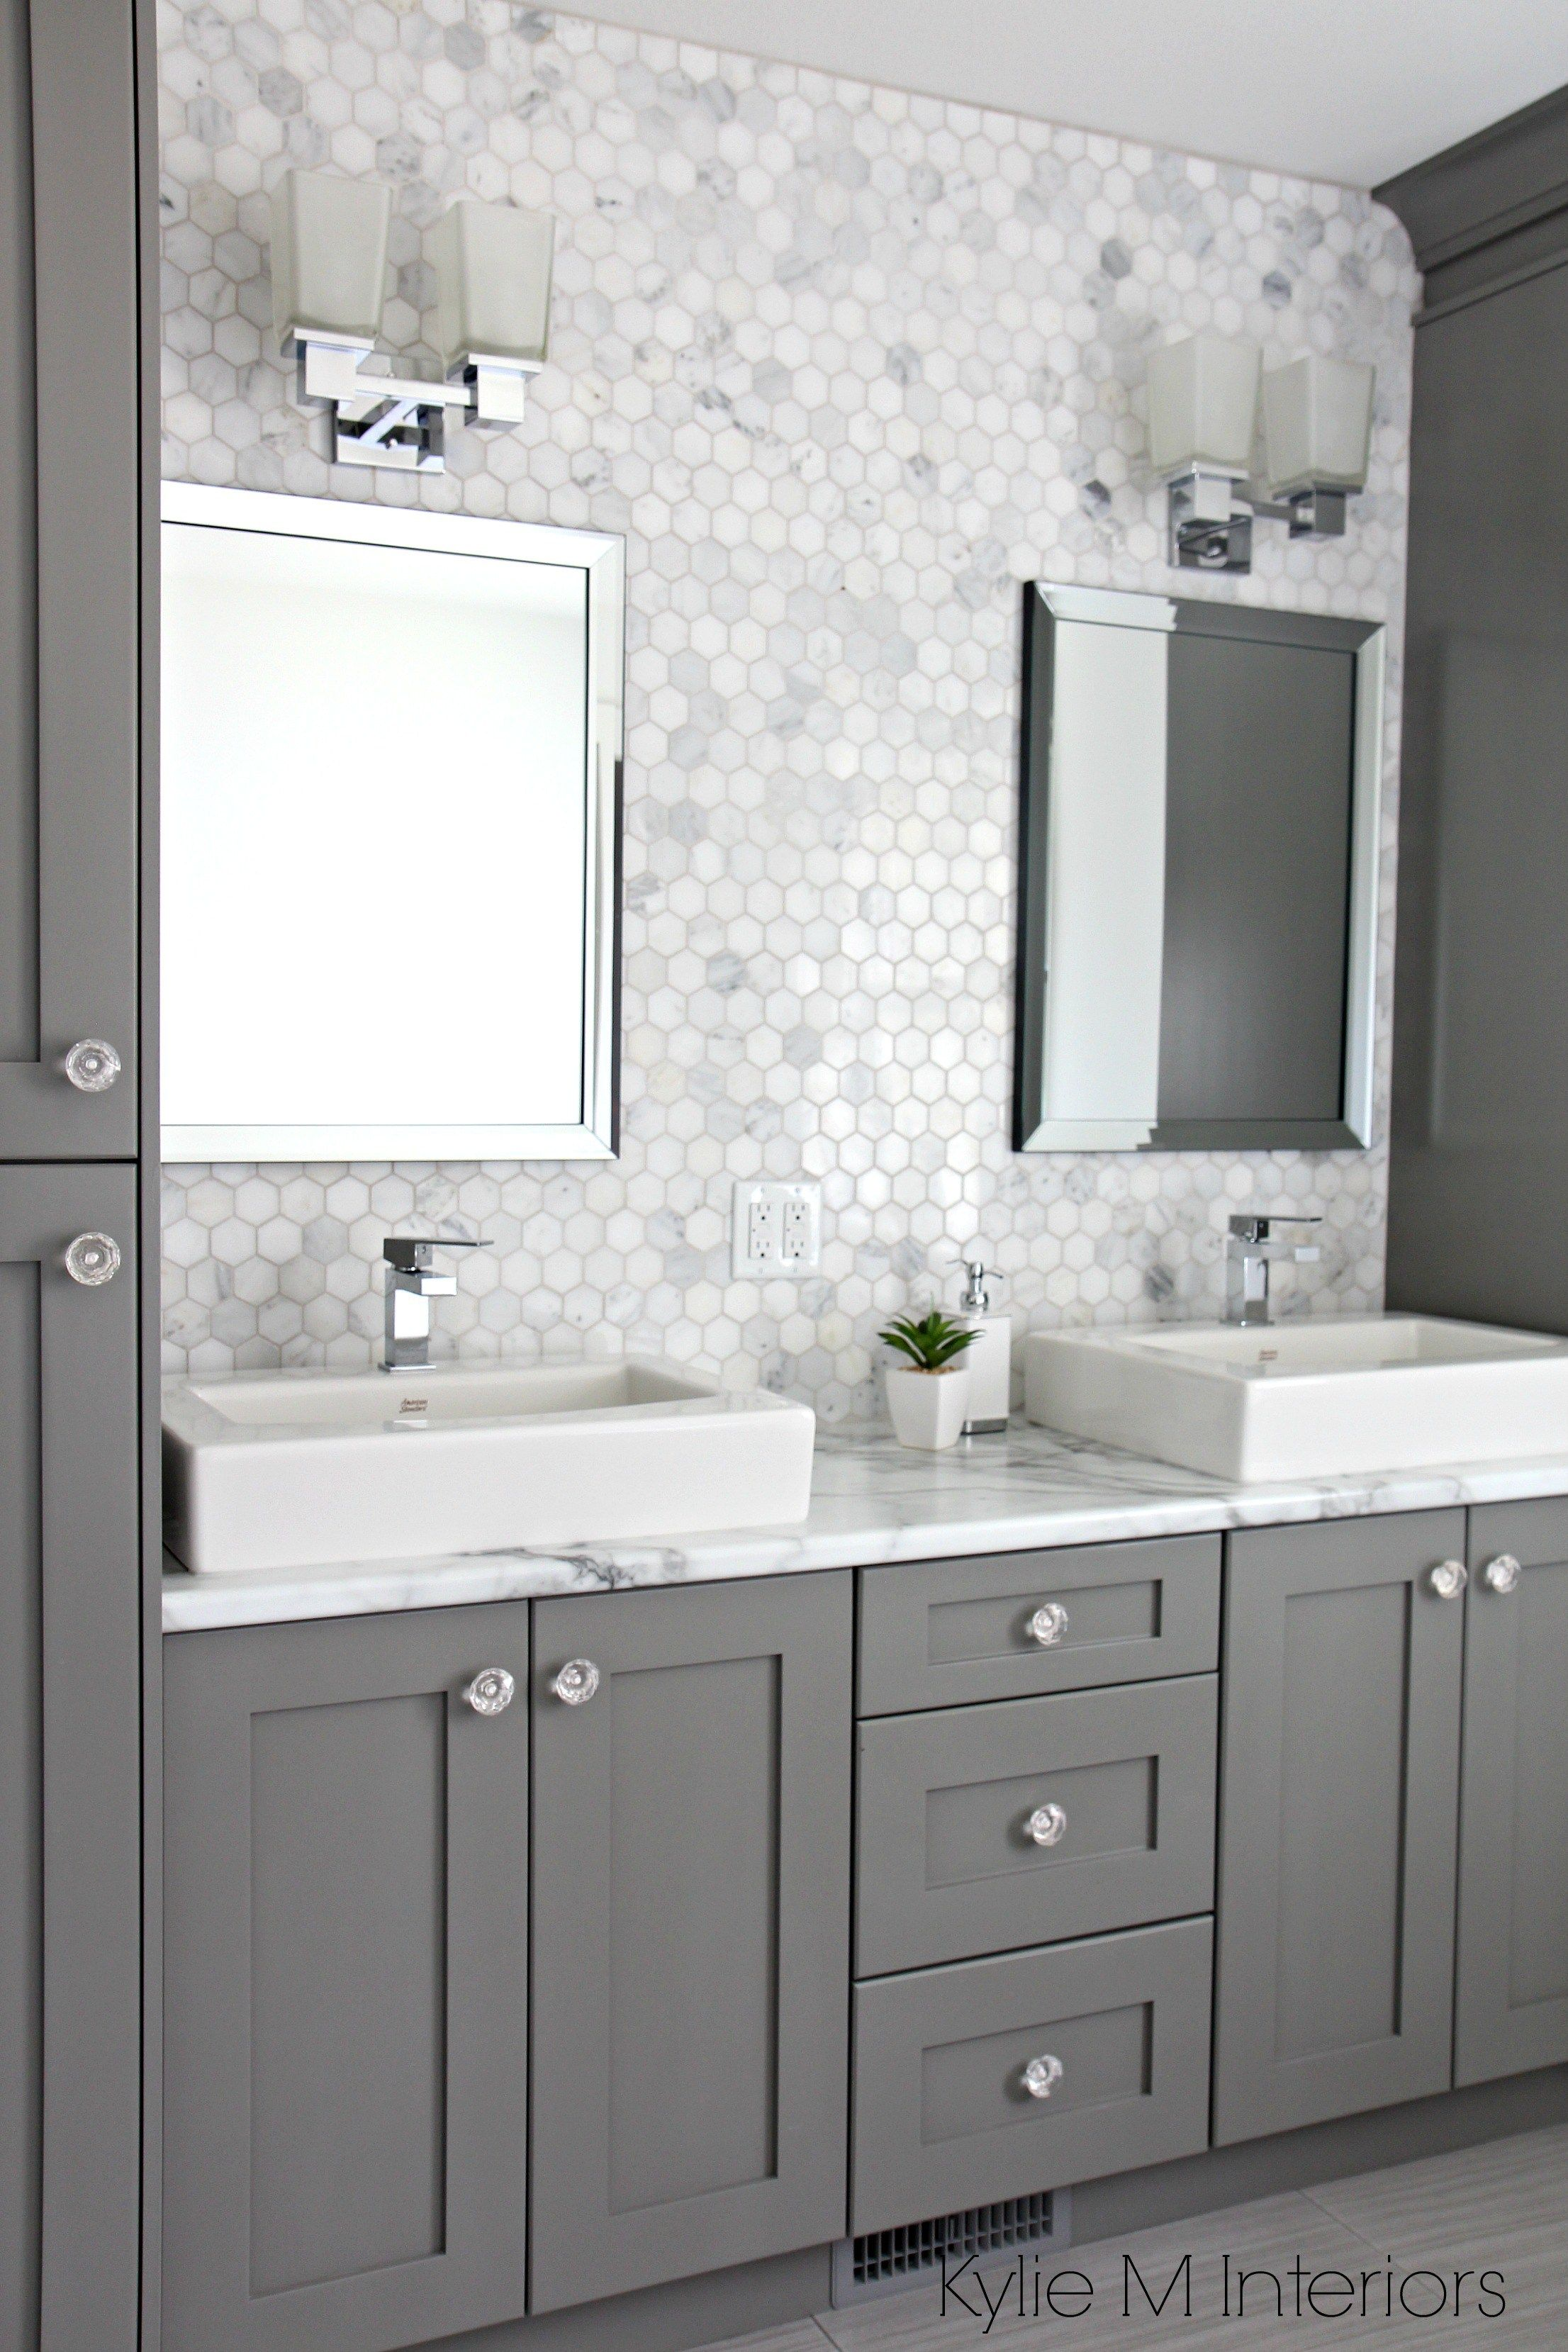 Entire wall tiles behind sinks. Marble backsplash in hexagon shape ...